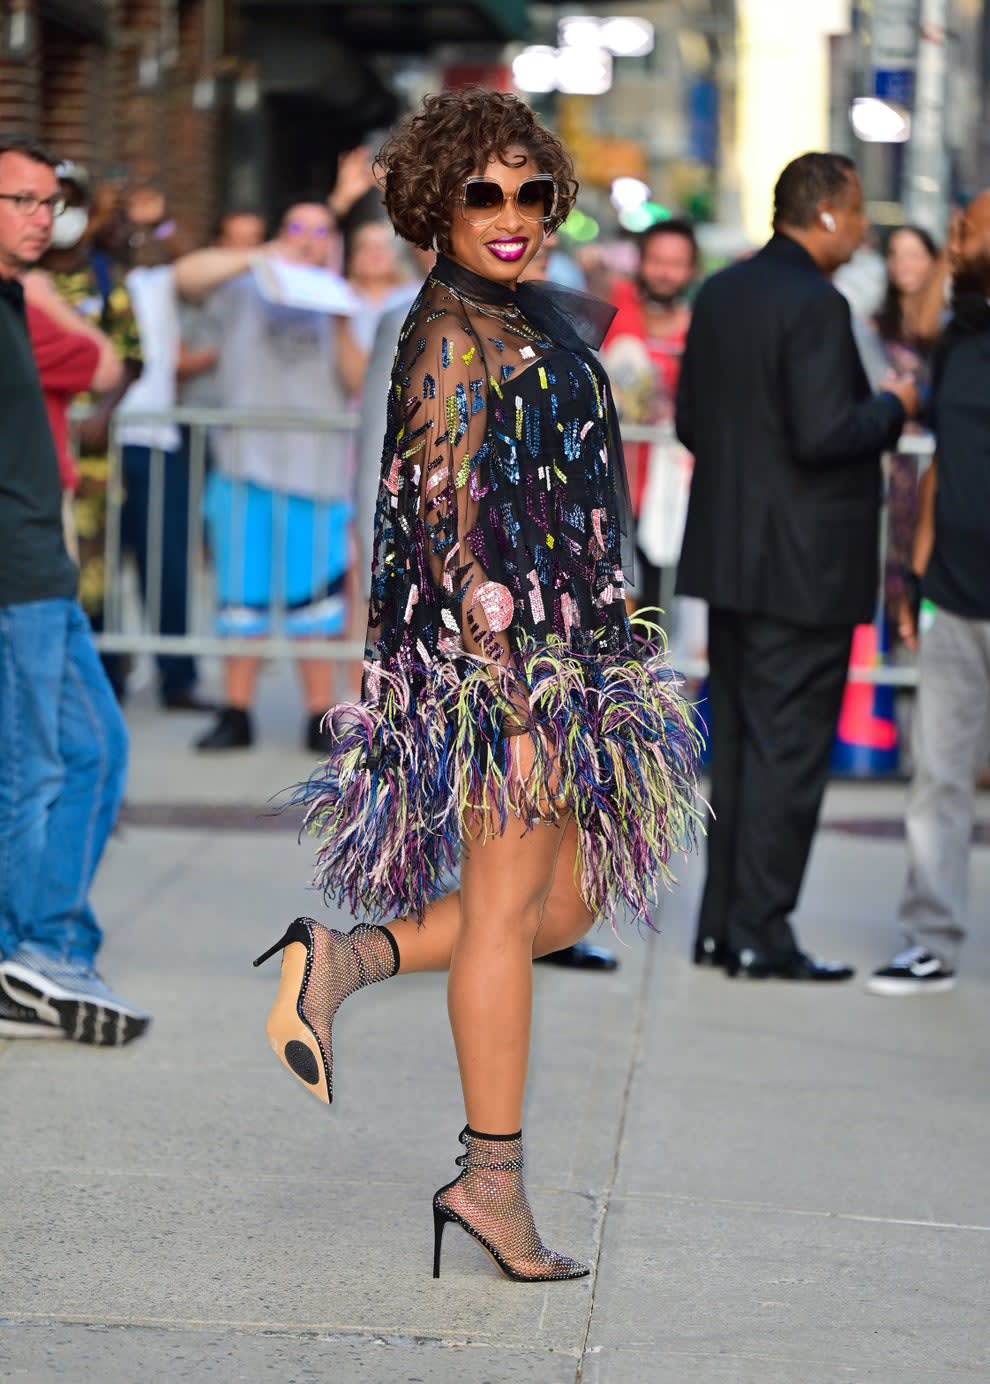 Jennifer wears a multi-colored, mini-dress that's made of mesh on top and feathered on the bottom with a bow around the neck. She also wears fishnet ankle boots.